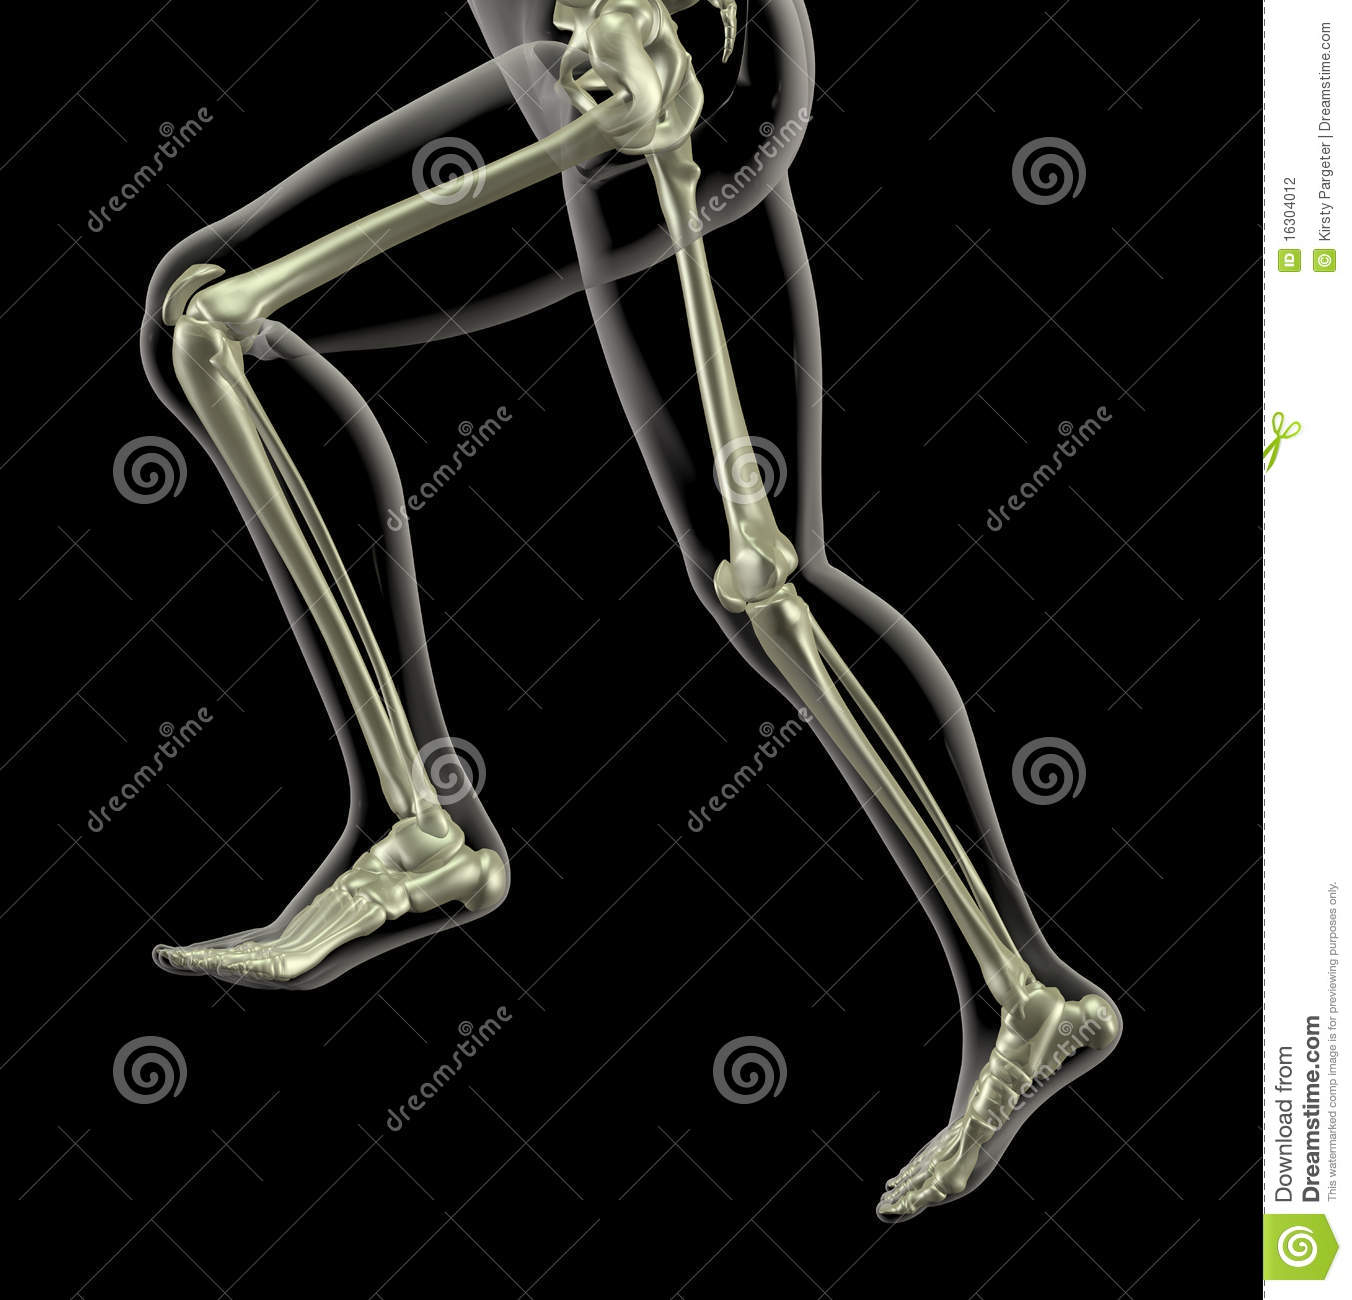 medical skeleton in running motion stock photography - image: 16304012, Skeleton